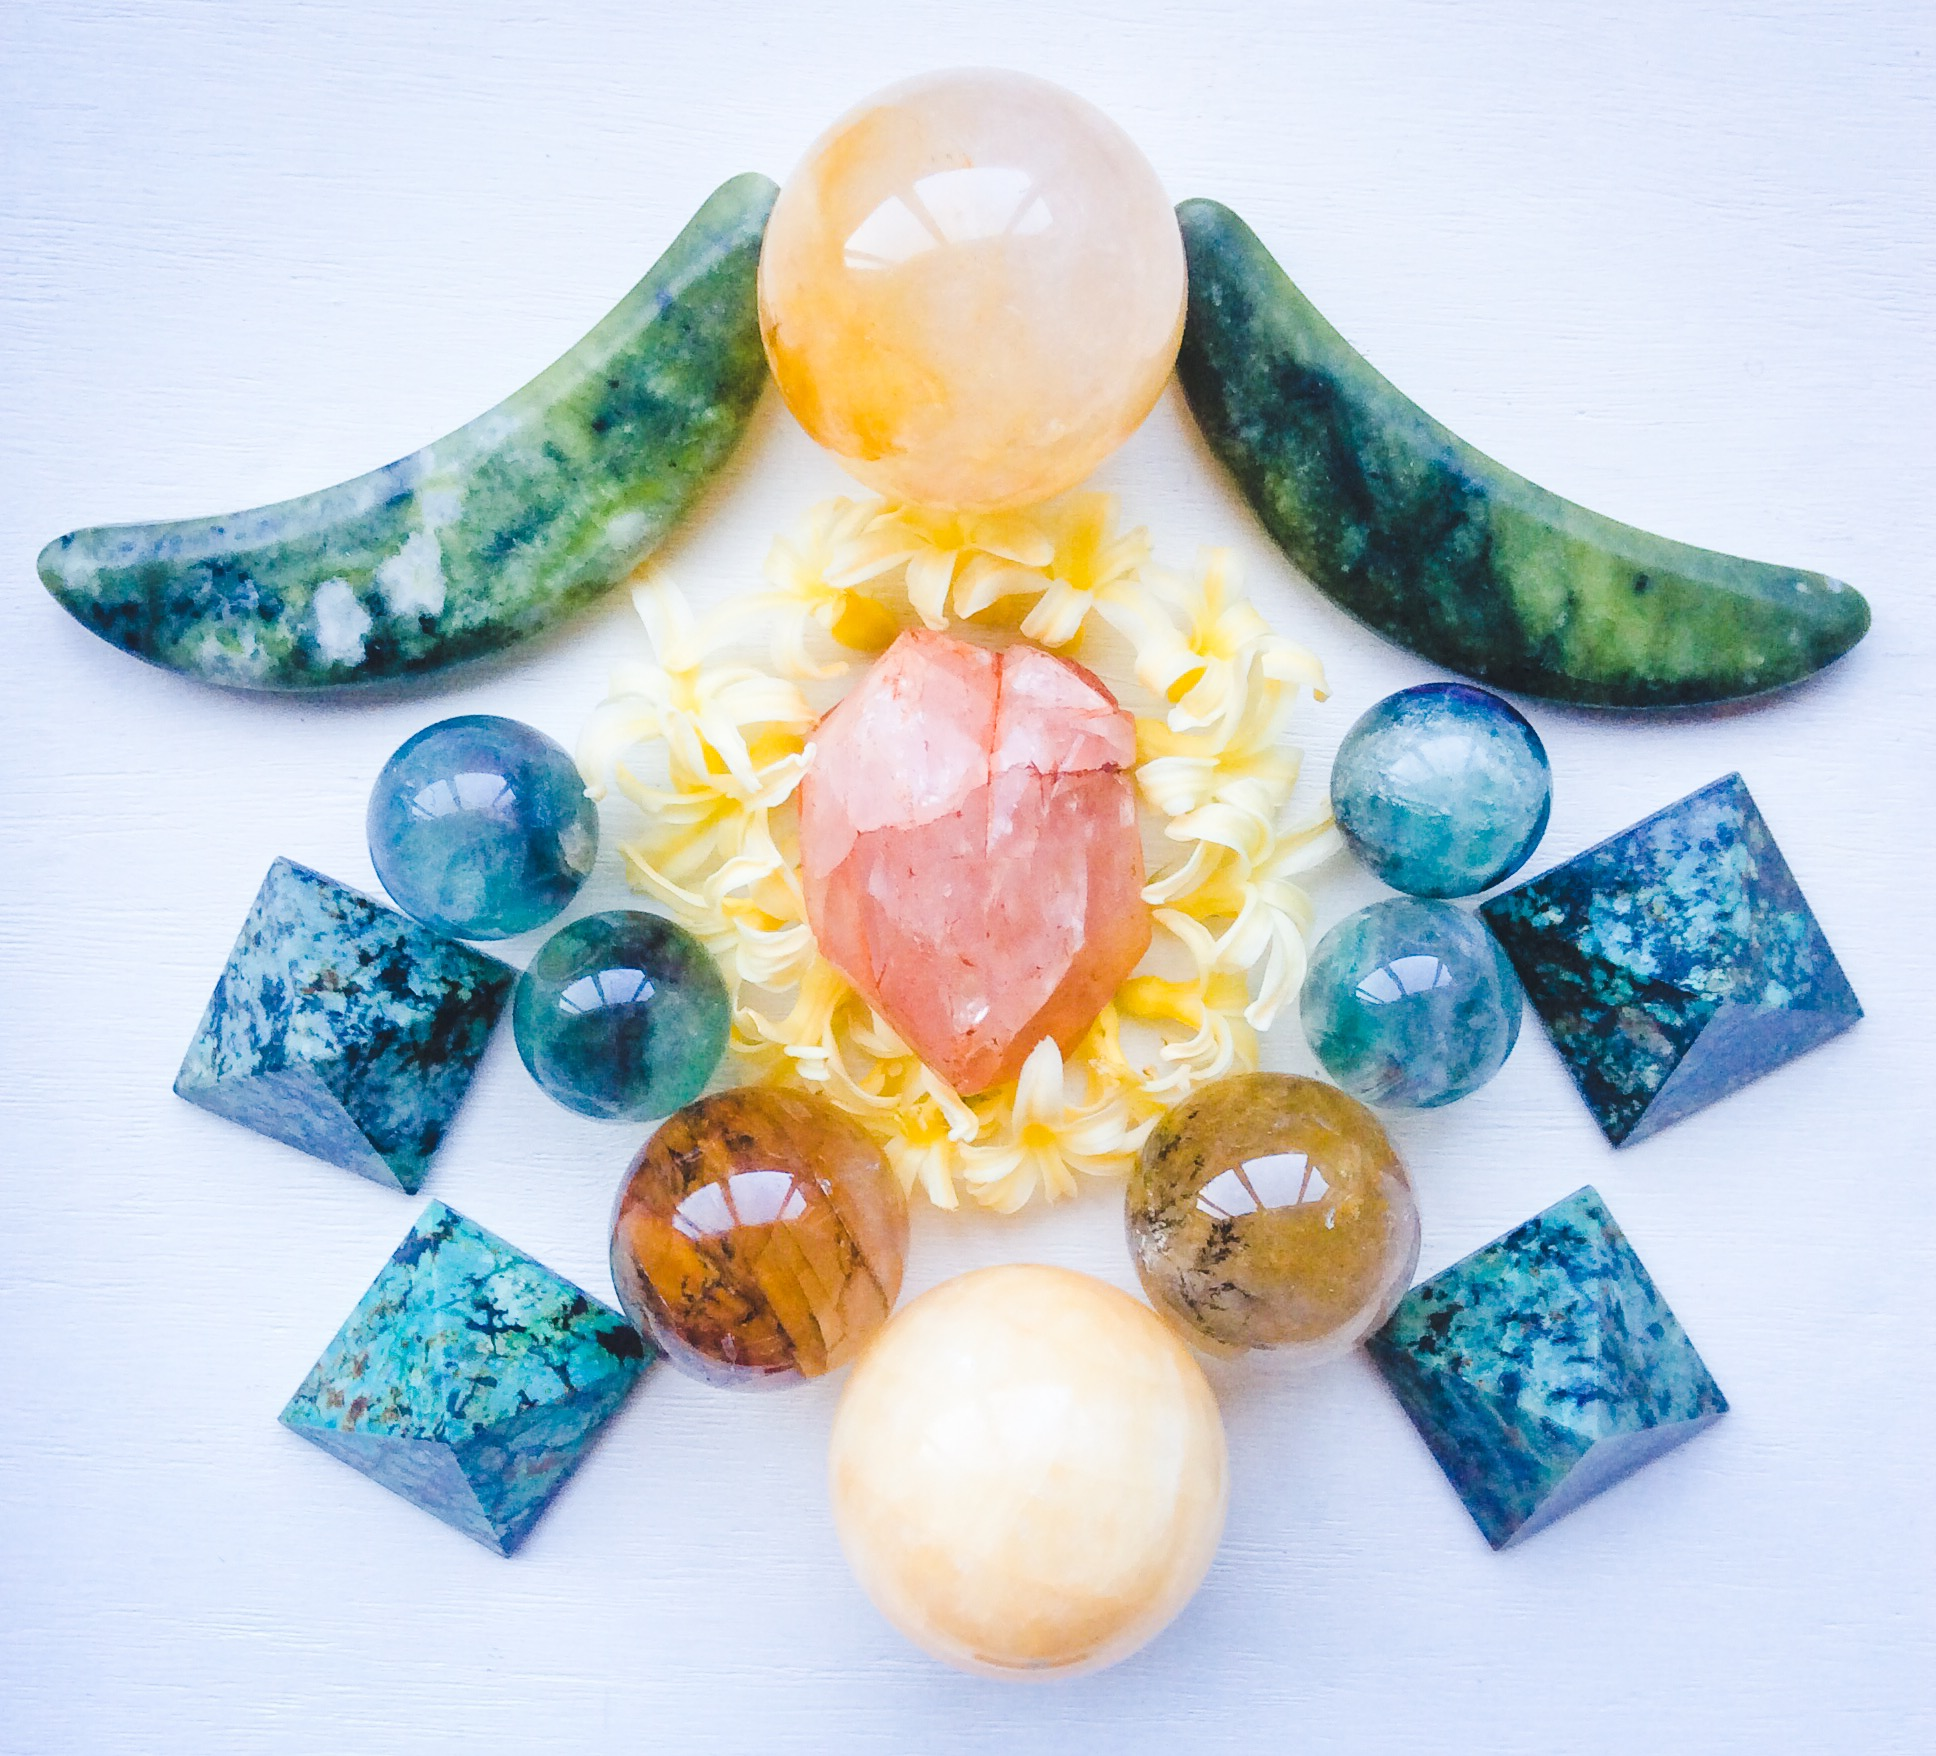 Crystal Grid by Woodlights Woudlicht - Morganite, Golden Healer Quartz, Dendritic Agate, Yellow Calcite, Fluorite, Nephrite, Turquoise and Hyacinth